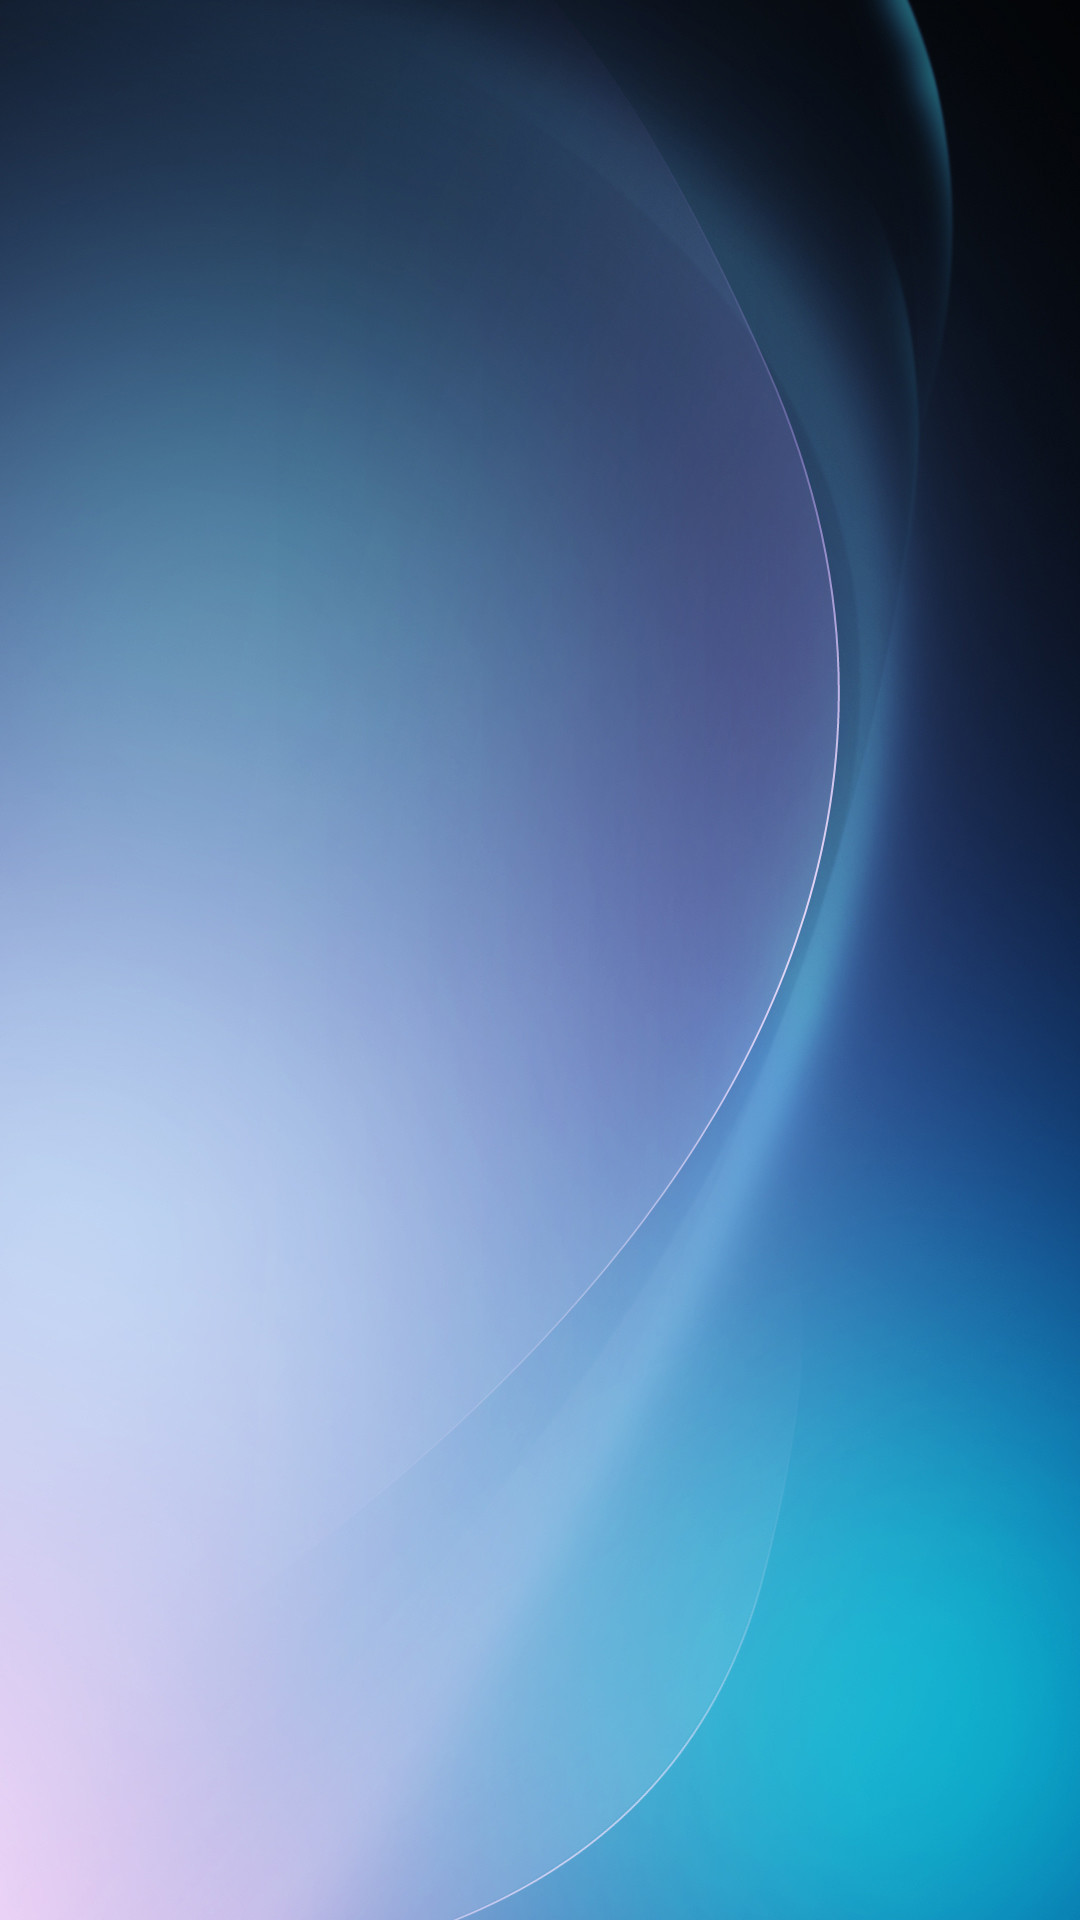 1080x1920 Abstract Blue Wave Android Wallpaper ...